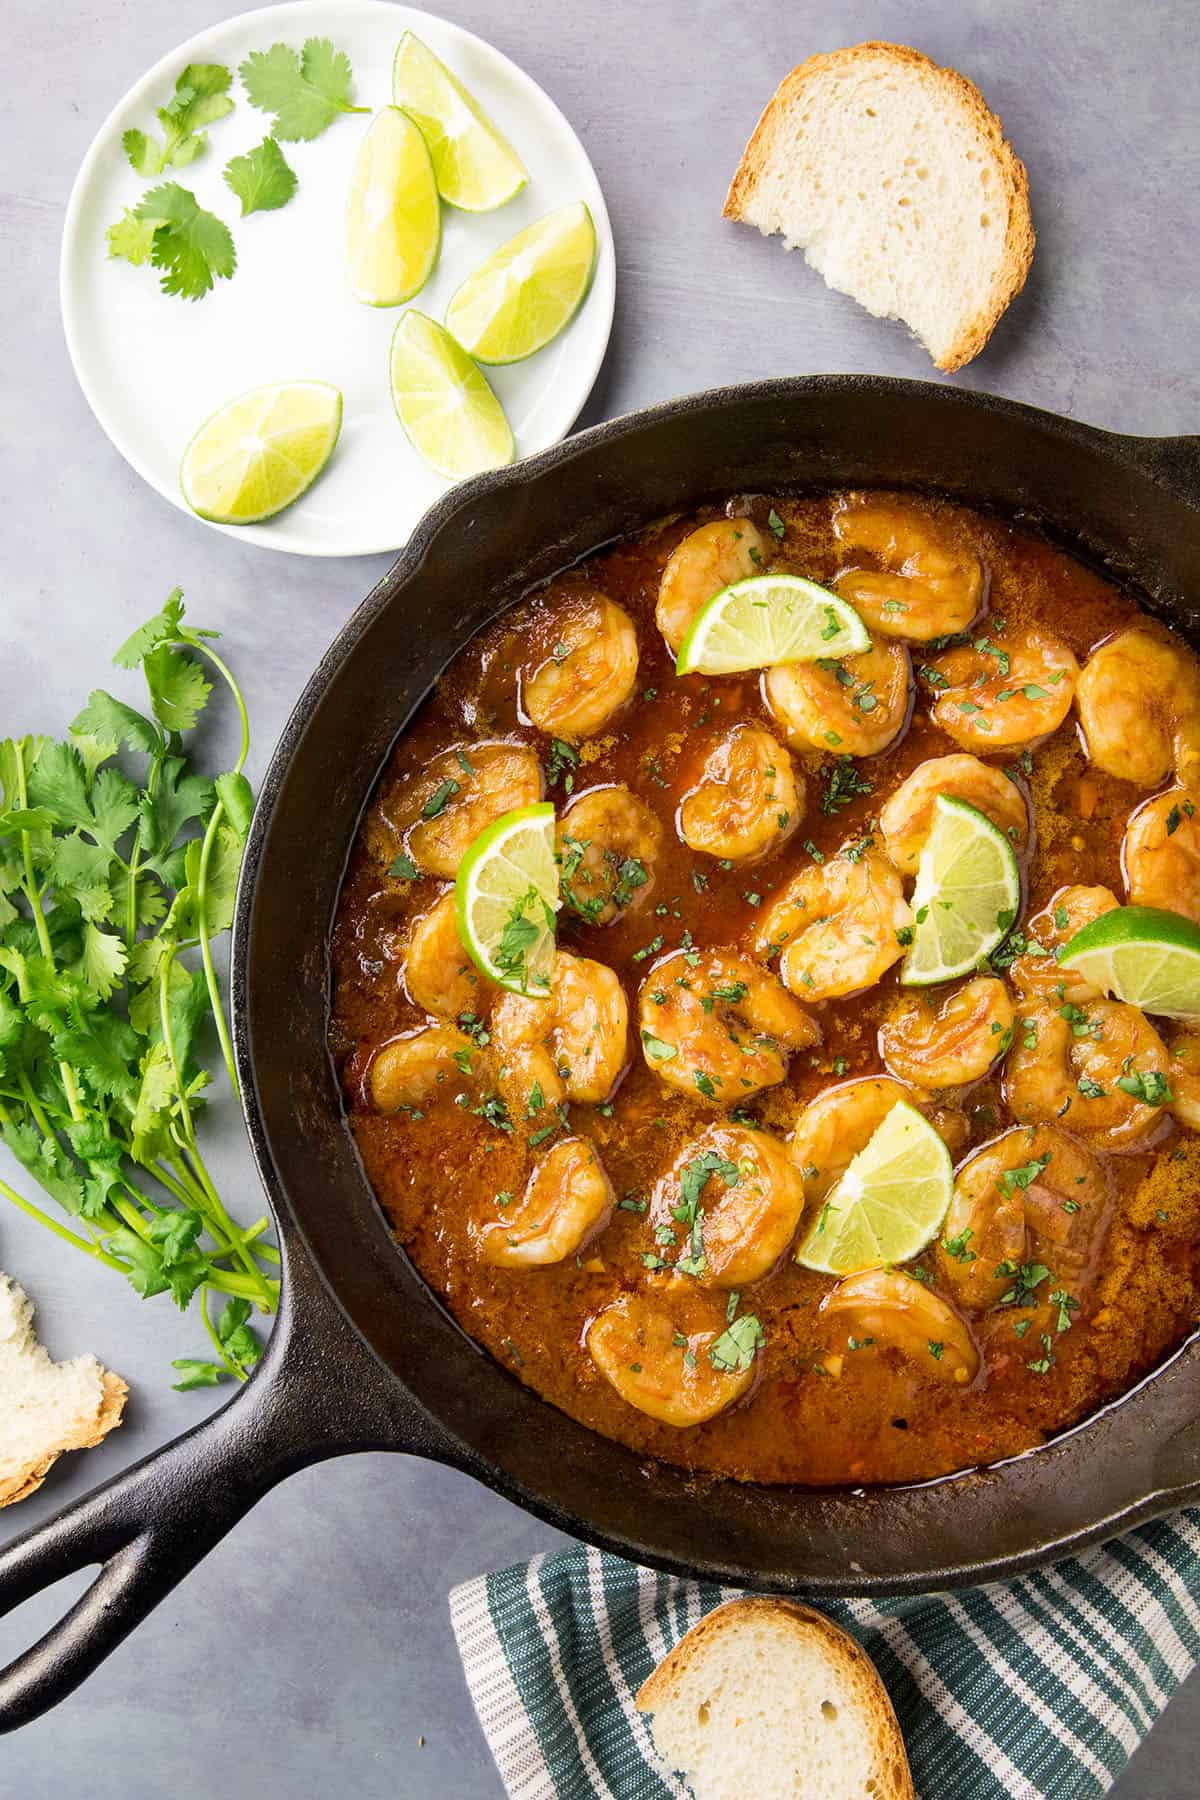 Shrimp in Fiery Chipotle-Tequila Sauce - In a pan, ready to serve